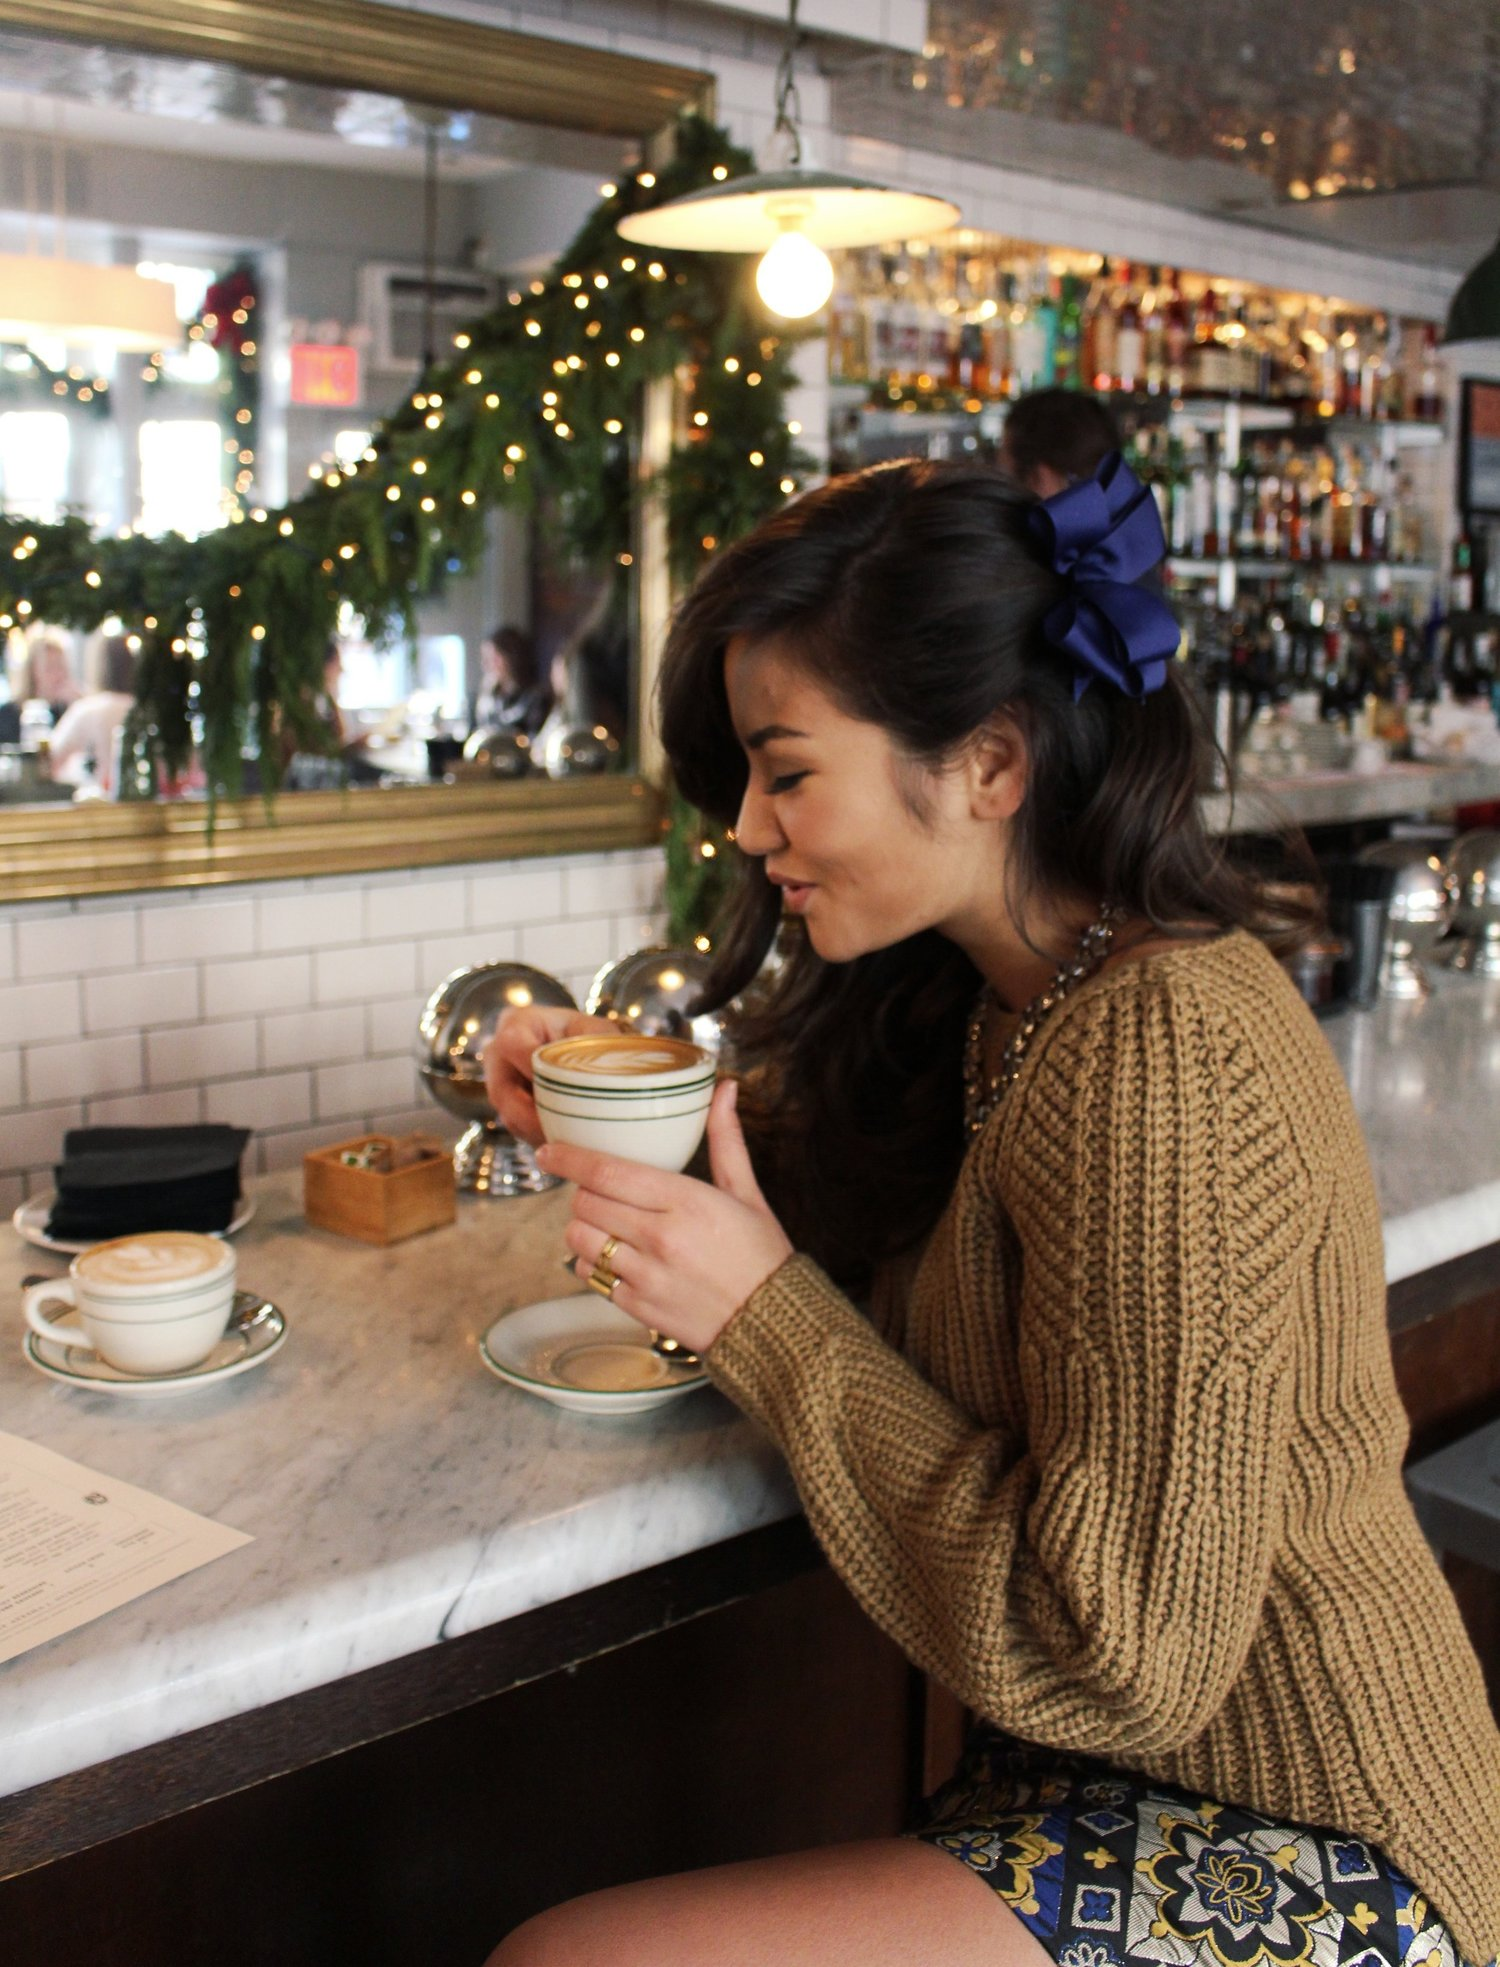 Topics tagged under withlovecaila on bachandbachettefans.net LOFT+Mustard+Christmas+Sweater+Caila+Quinn+drinking+coffee?format=1500w